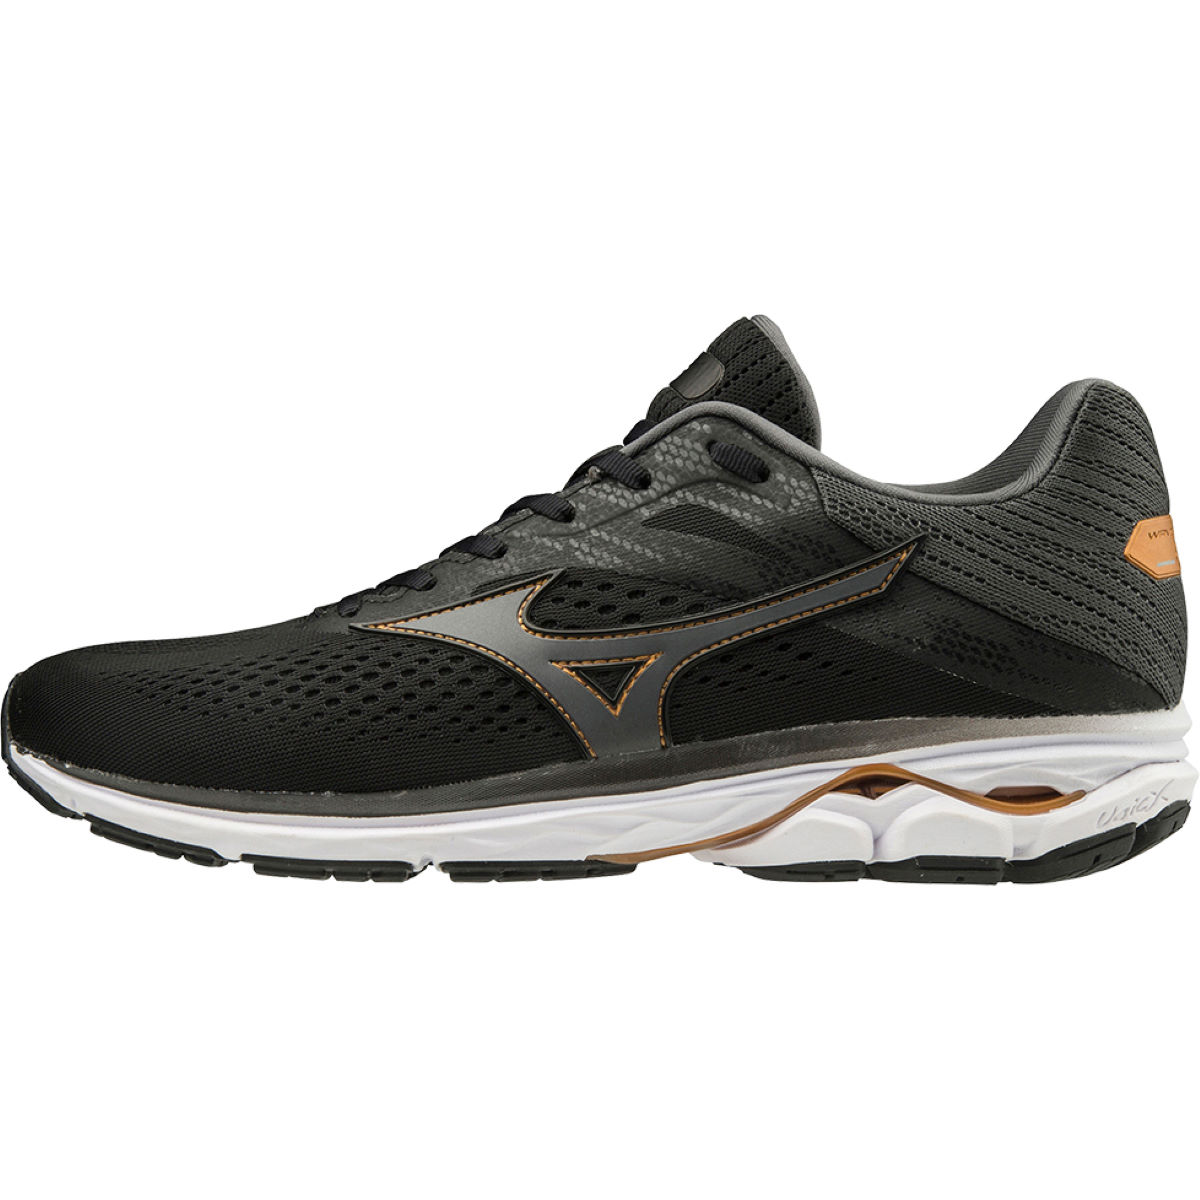 Zapatillas Mizuno Wave Rider 23 - Zapatillas de running